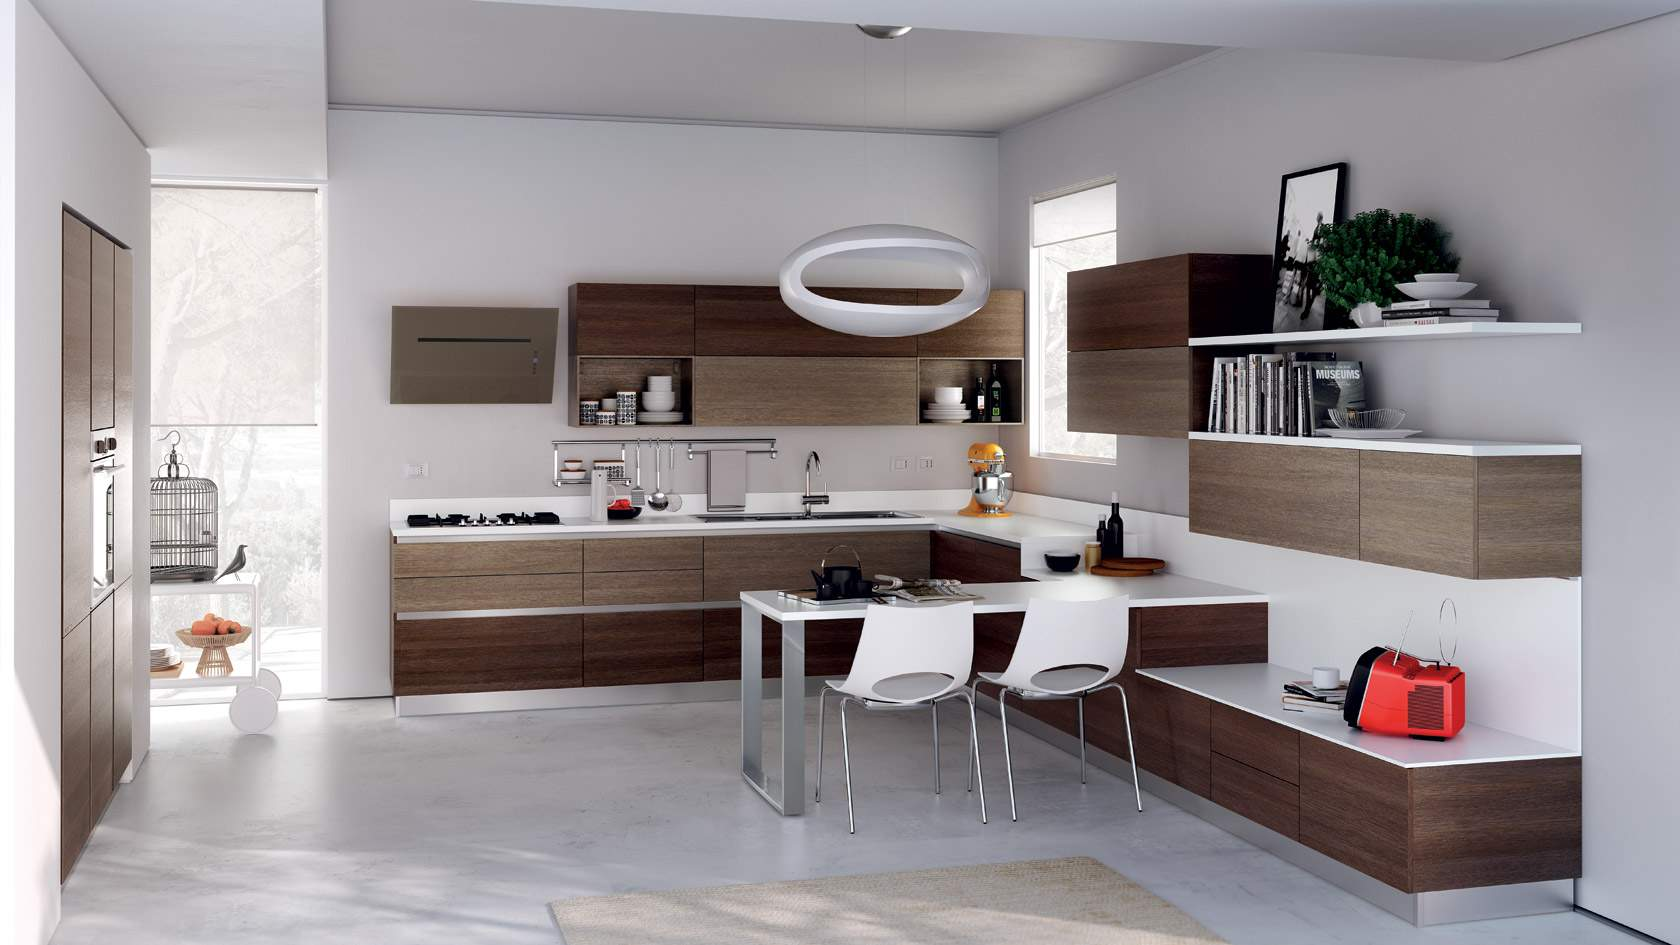 White-Brown-Kitchen-with-Eco-Cabinet-plus-Pendant-Lamp